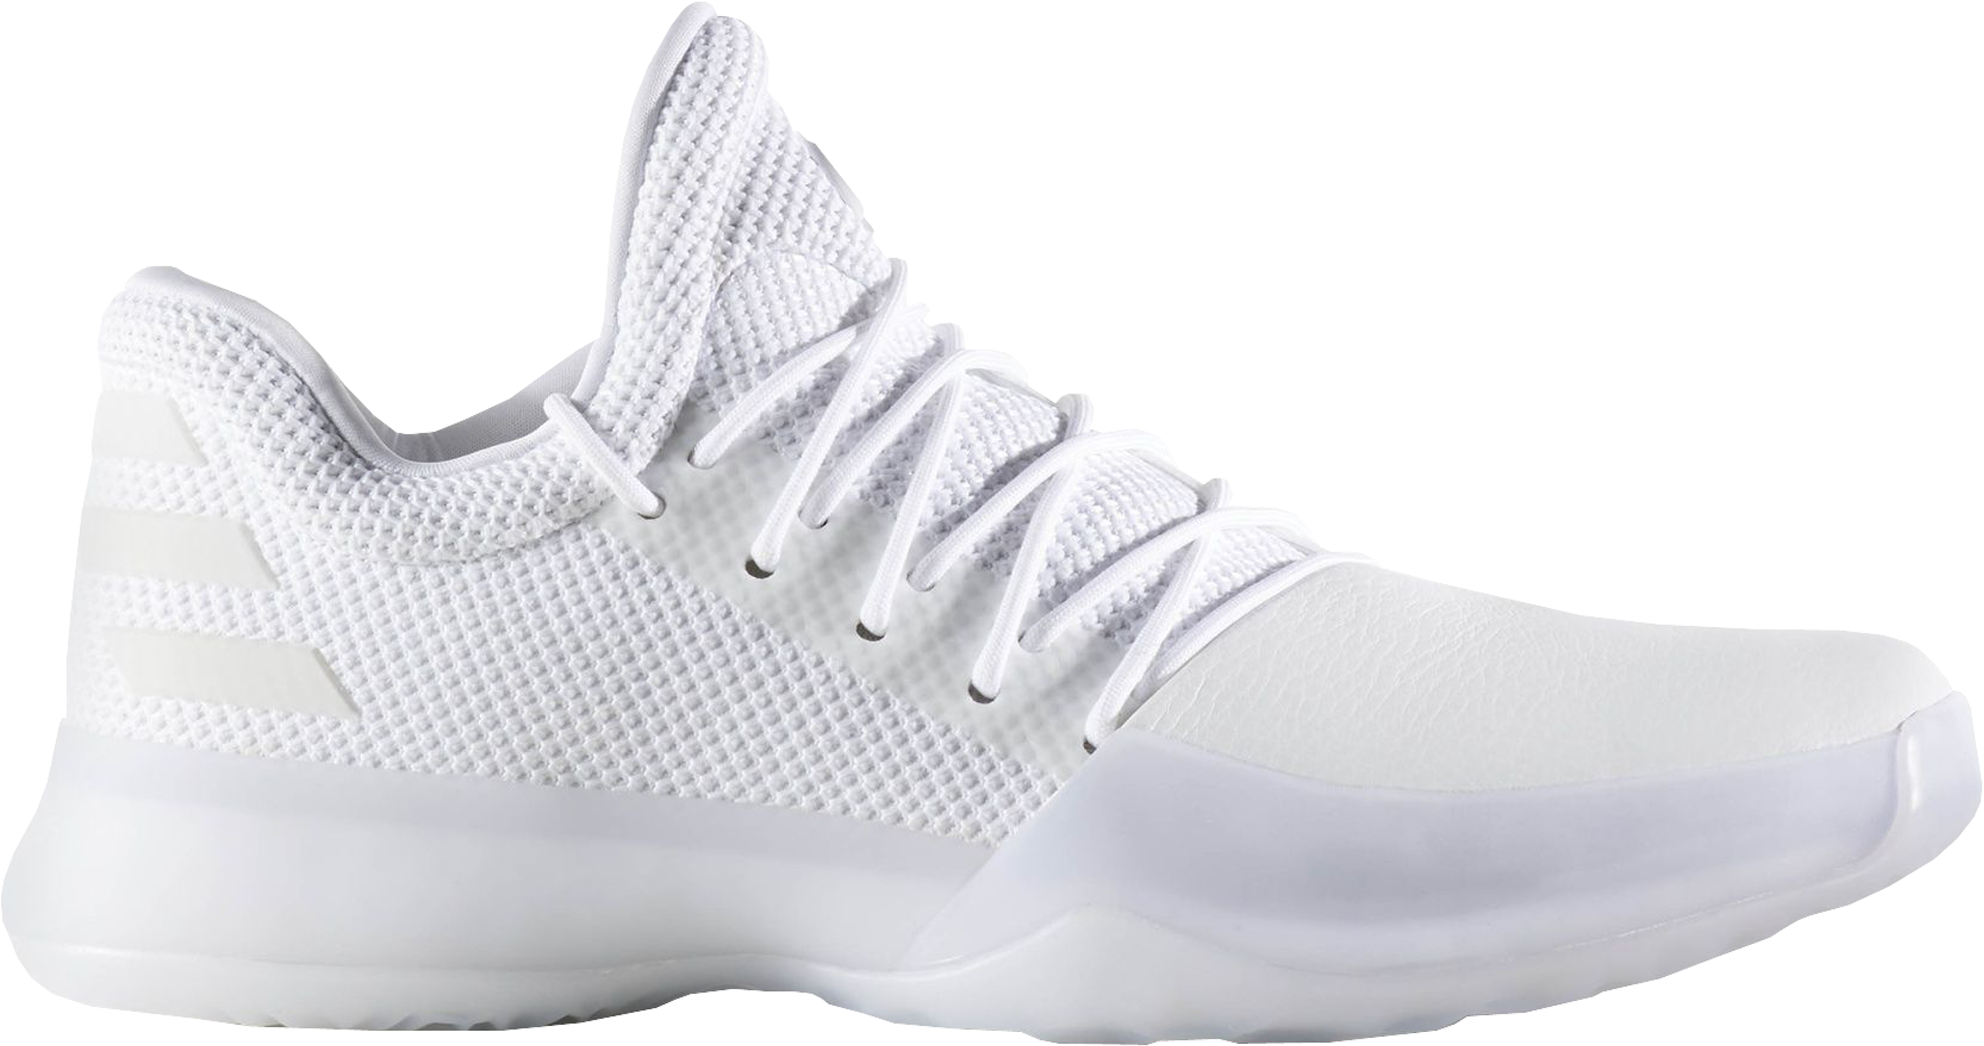 adidas Harden Vol. 1 Yacht Party - BY4525